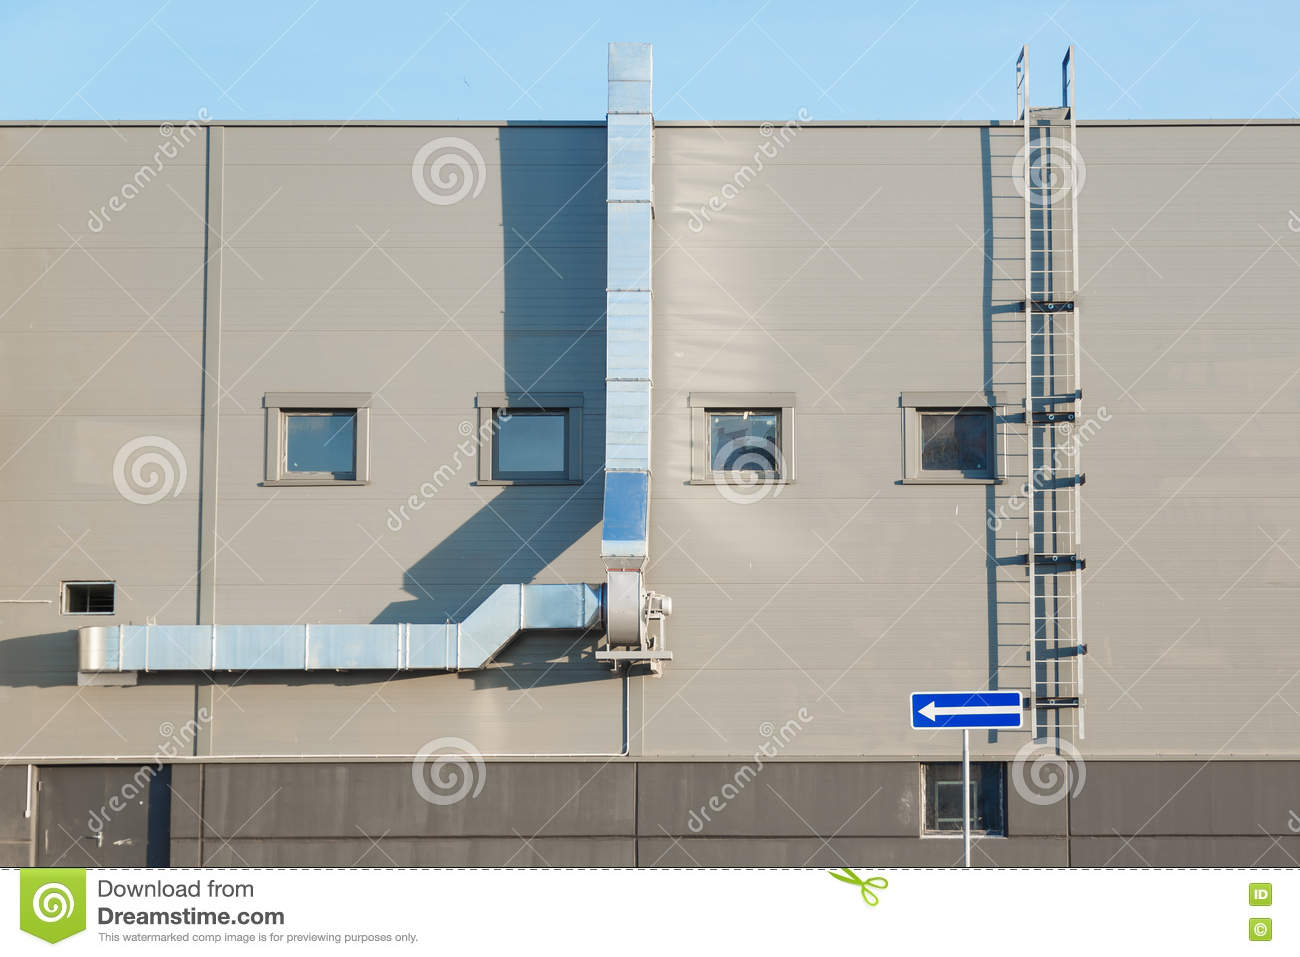 Industrial Building Ventiltors : Facade of an industrial building with ventilation stock